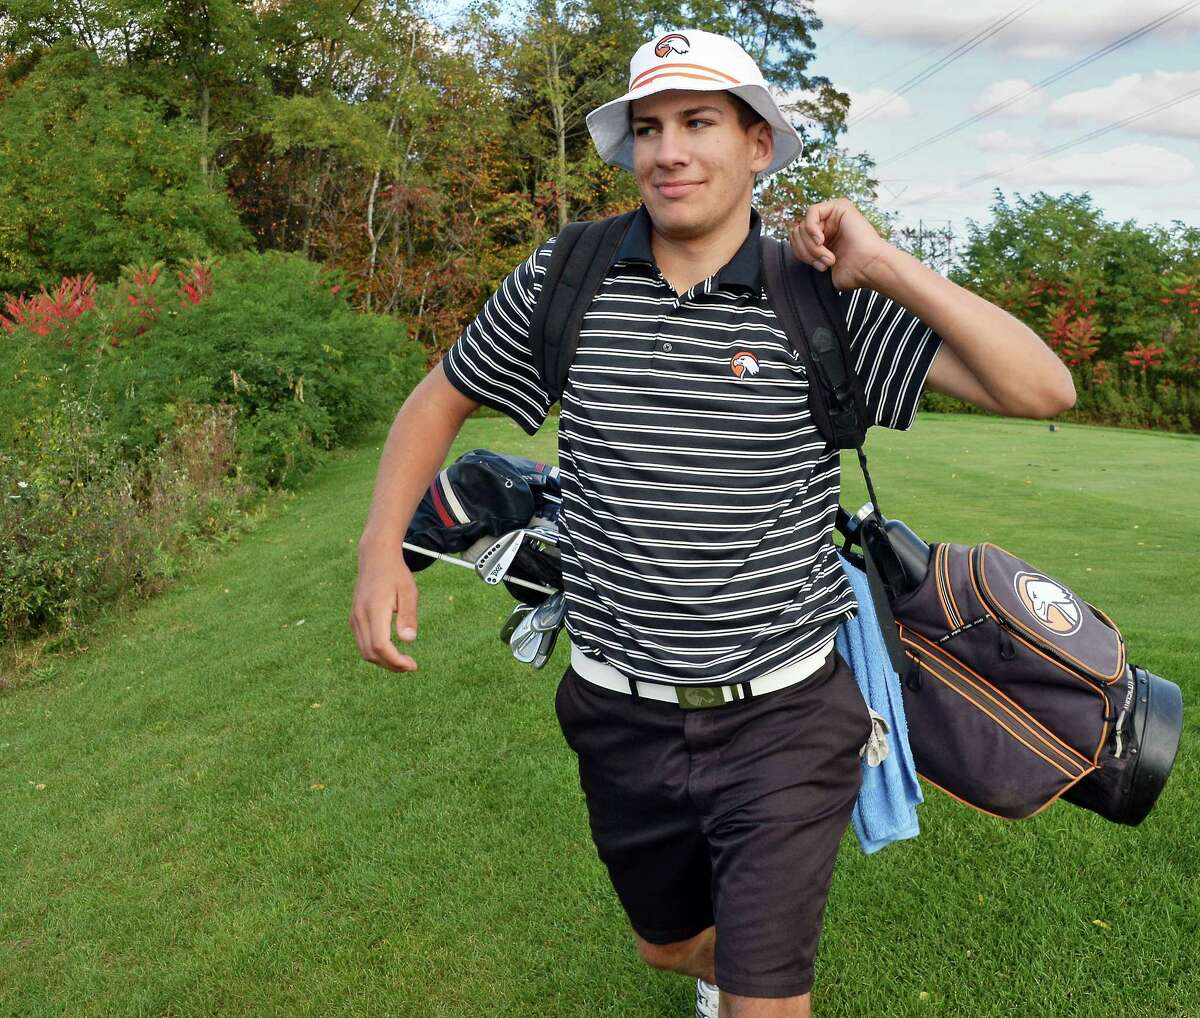 Austin Fox of Bethlehem High during the Section II golf state qualifier at Orchard Creek Golf Course Thursday Oct. 12, 2017 in Altamont, NY. (John Carl D'Annibale / Times Union)